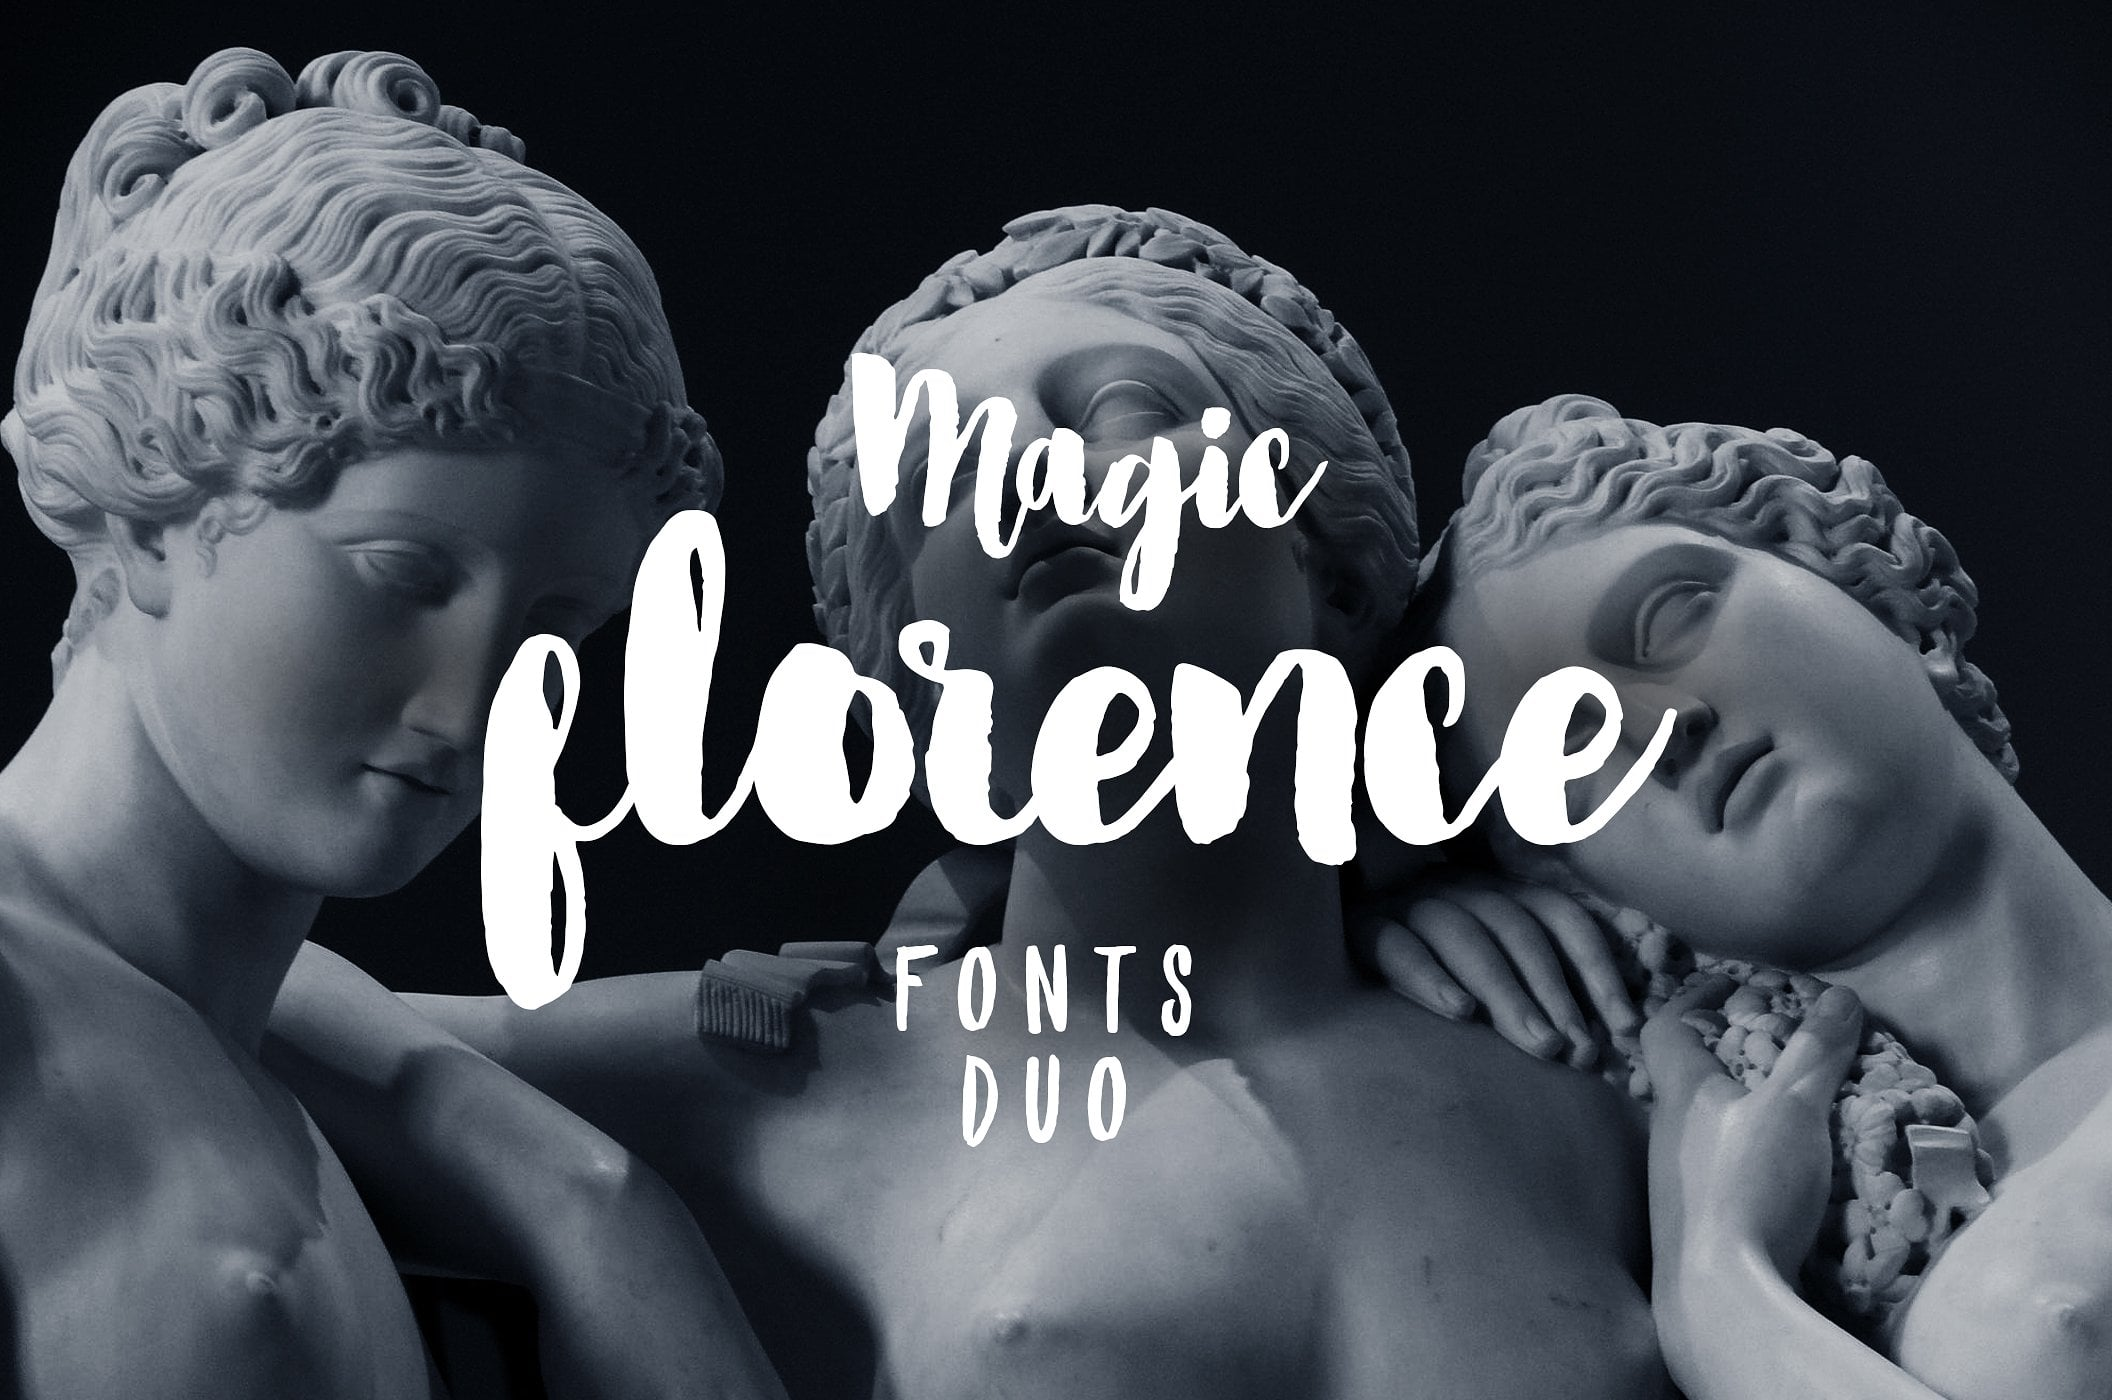 Web-safe Fonts - $14 for 14 Fonts Bundle - Best Deal - 001 1